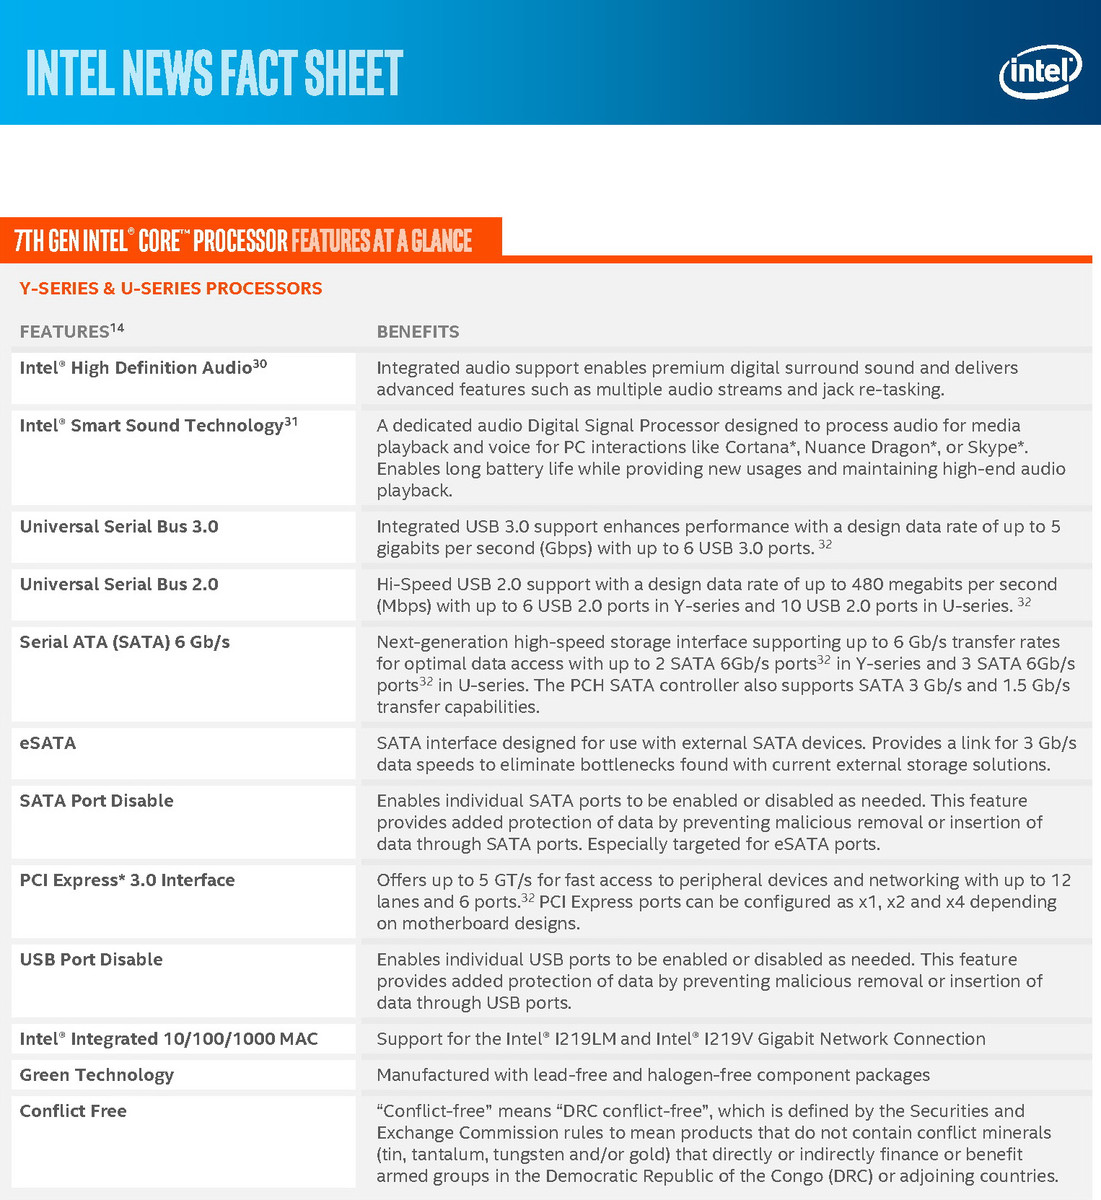 csm_Sheet_7th_Generation_Sheet_7thG_Intel_Core_Processors_Features_04_aad09b368b